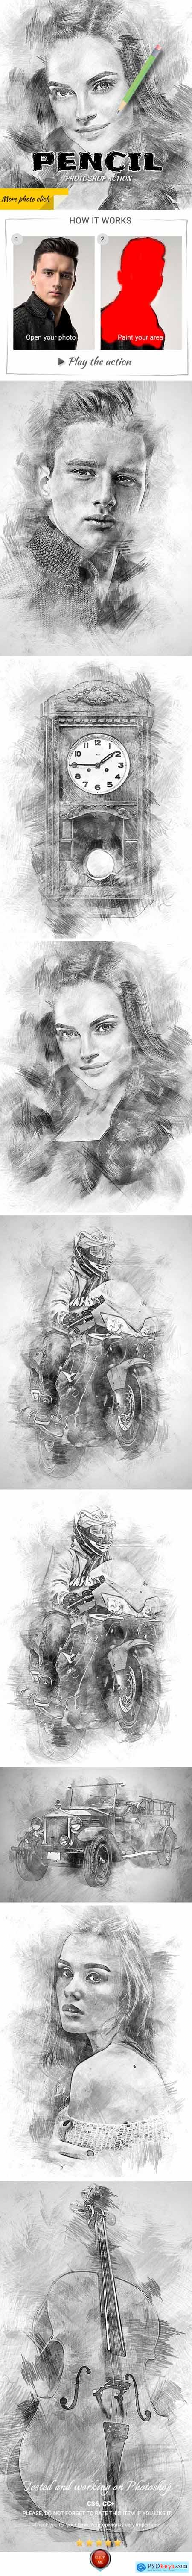 Graphicriver Pencil Photoshop Action